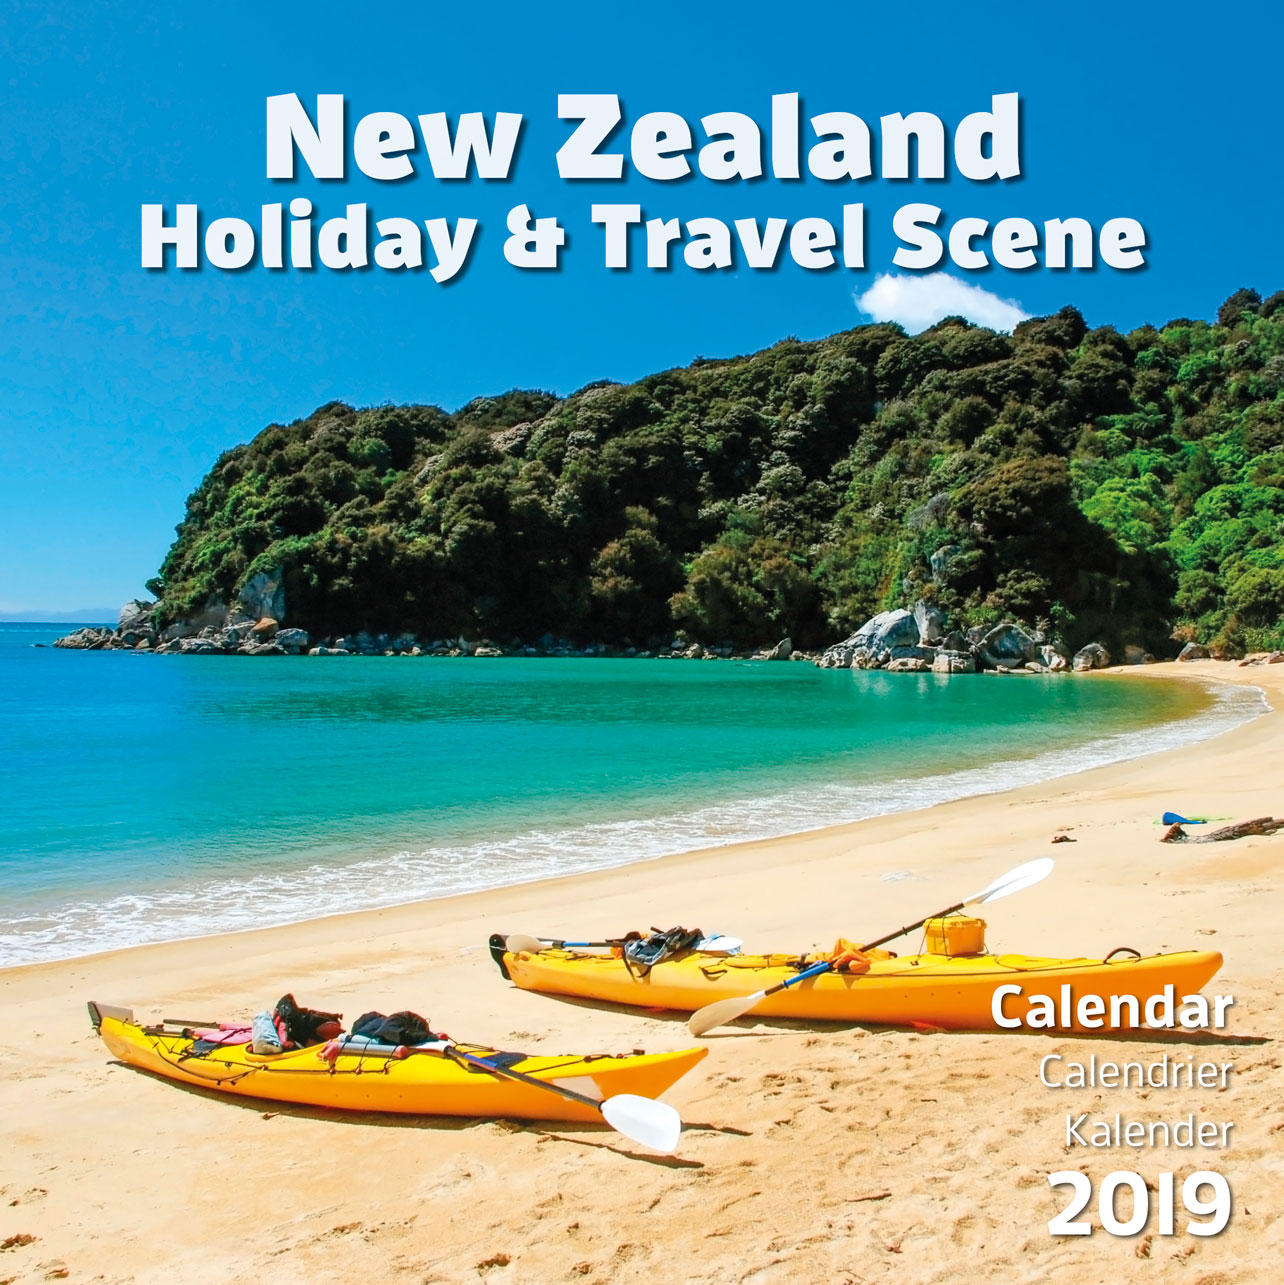 New Zealand Holiday and Travel Calendar 2019